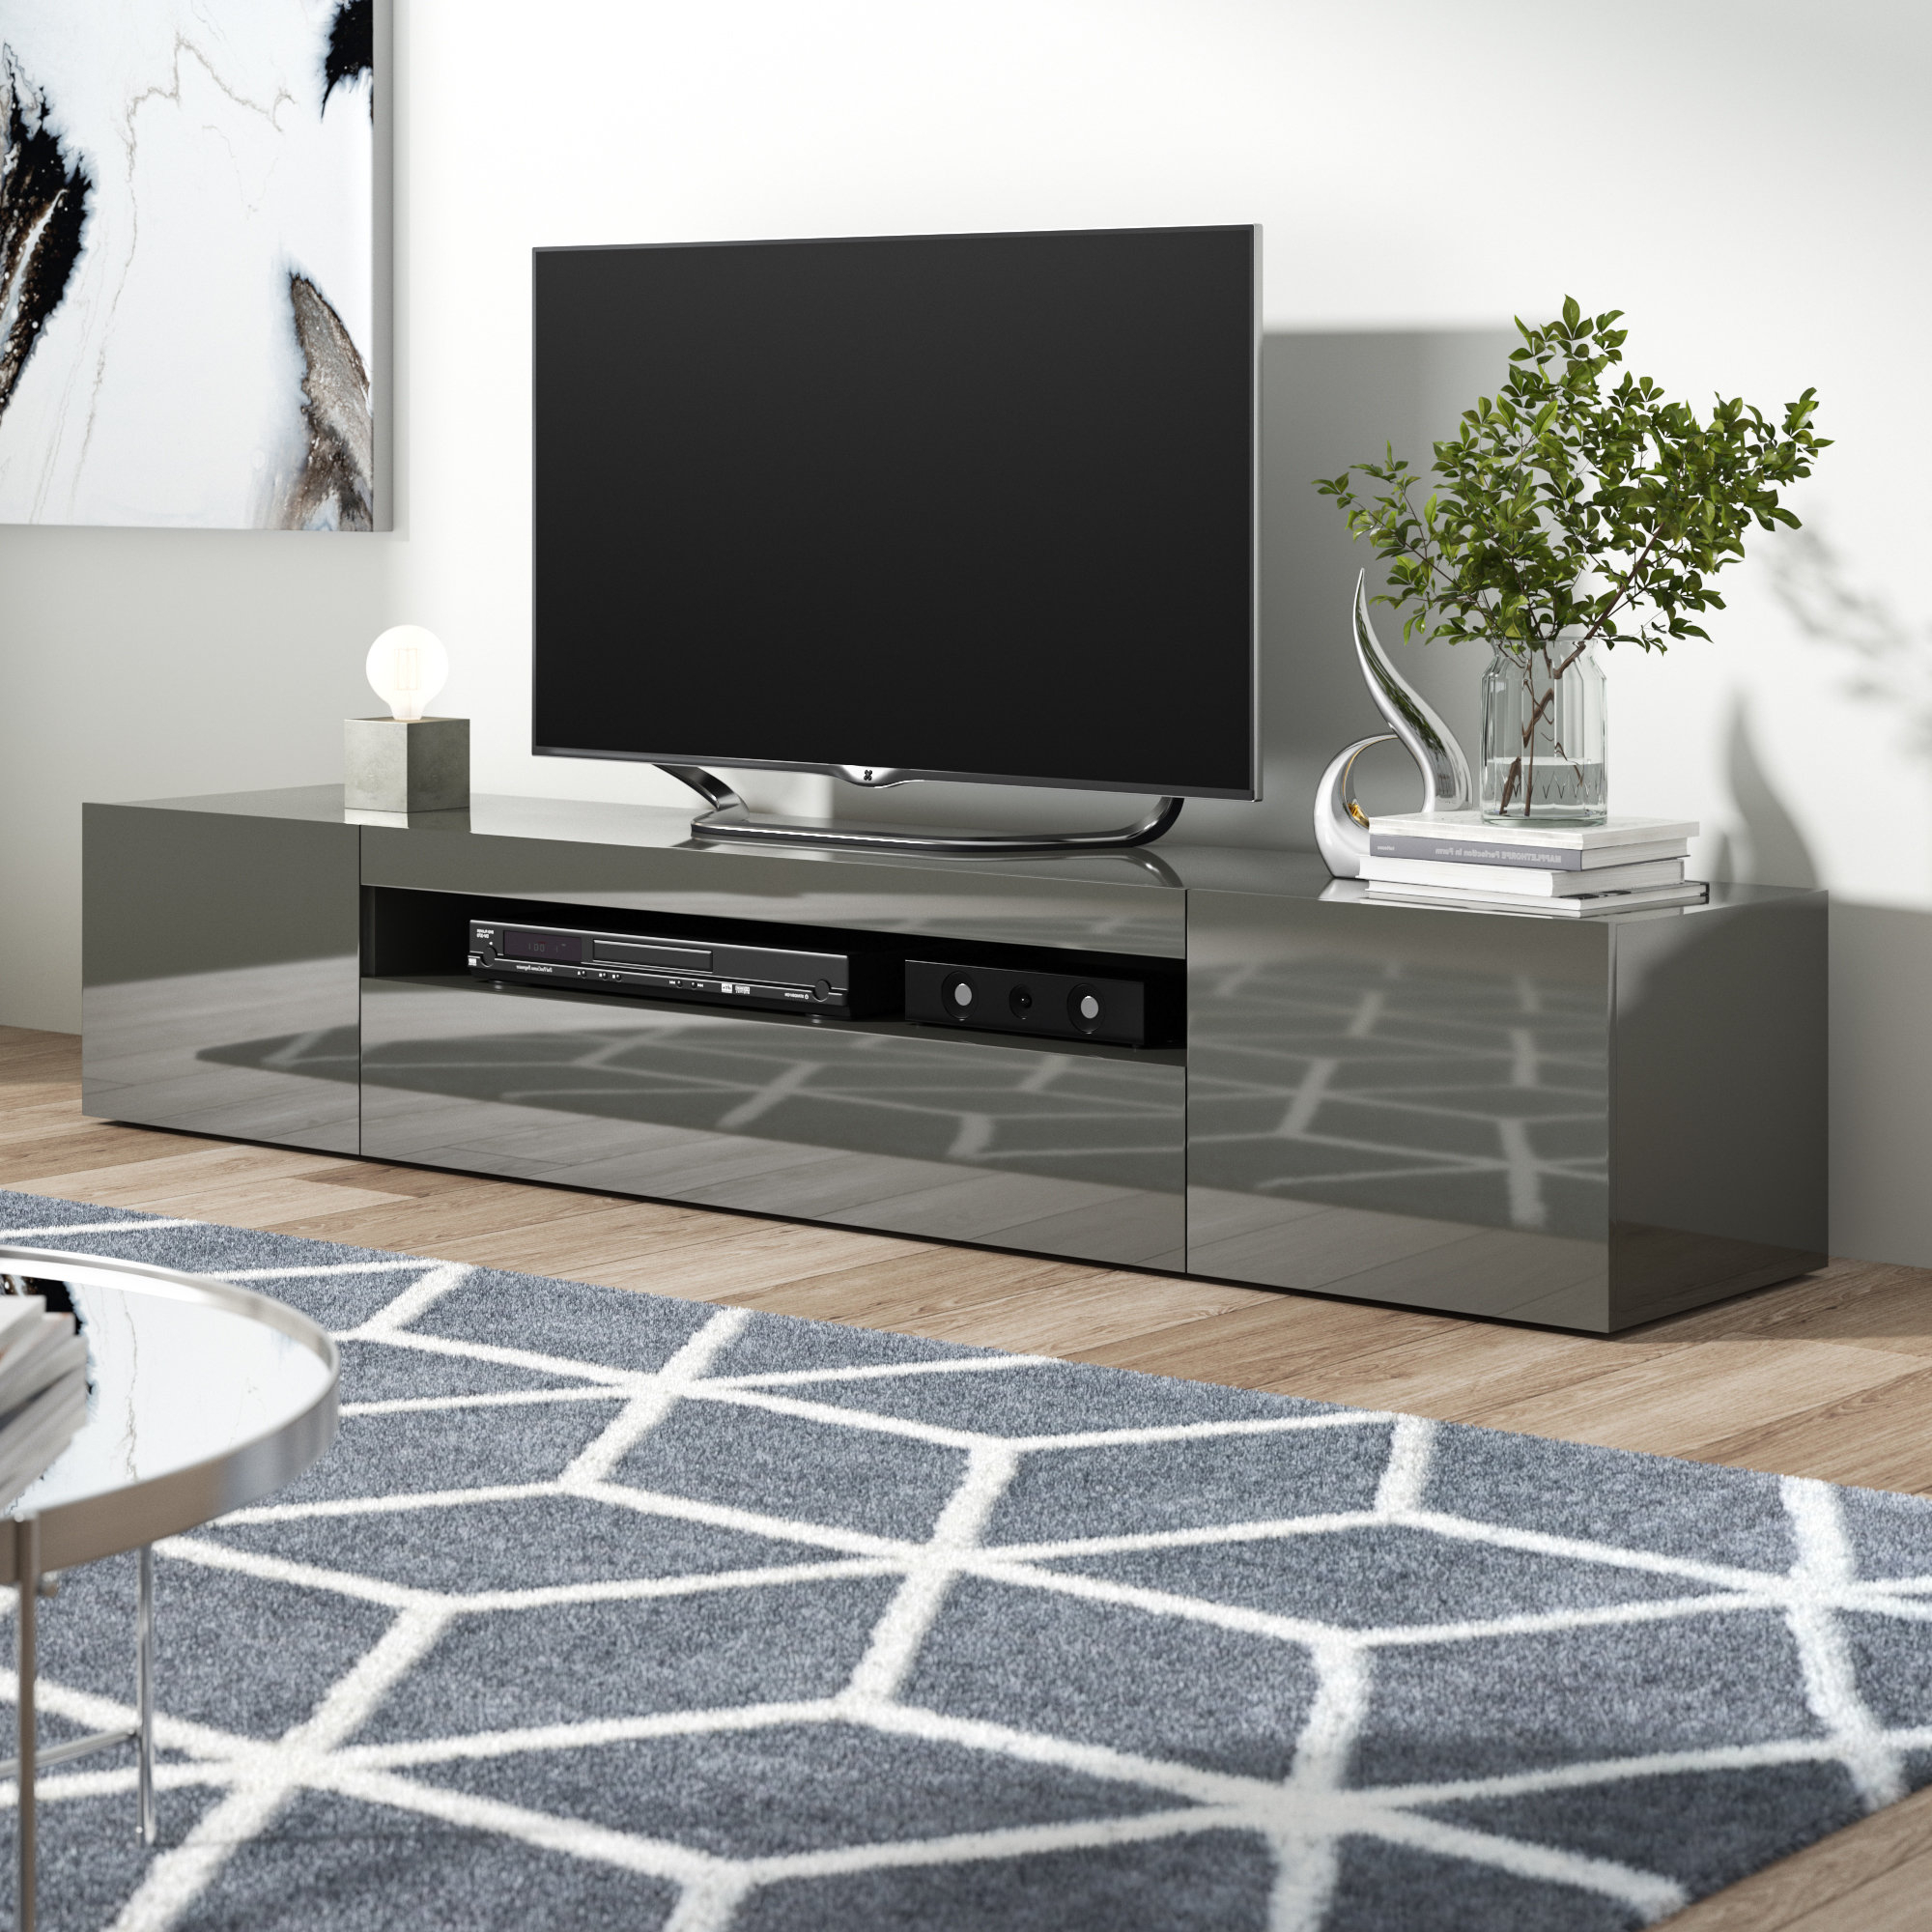 65 Inch Tv Stands (View 2 of 20)